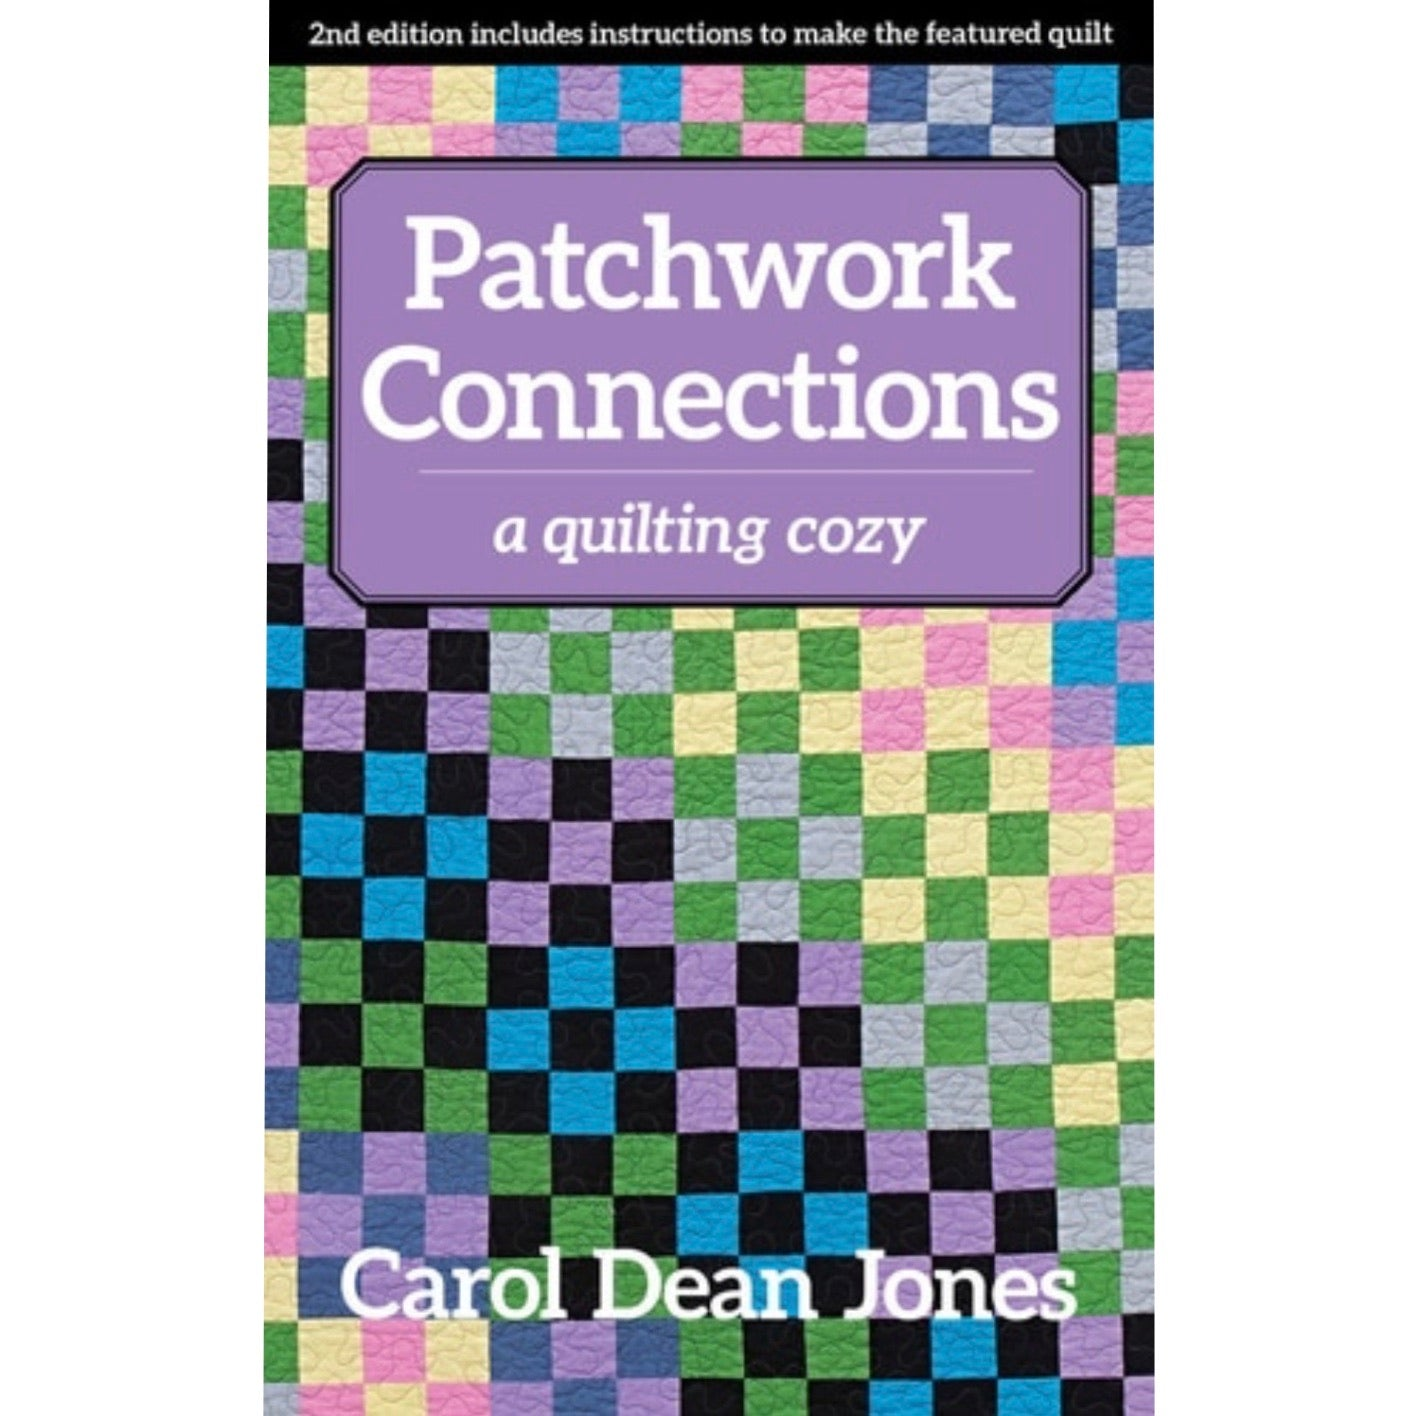 Patchwork Connections - Book 4 - Carol Dean Jones